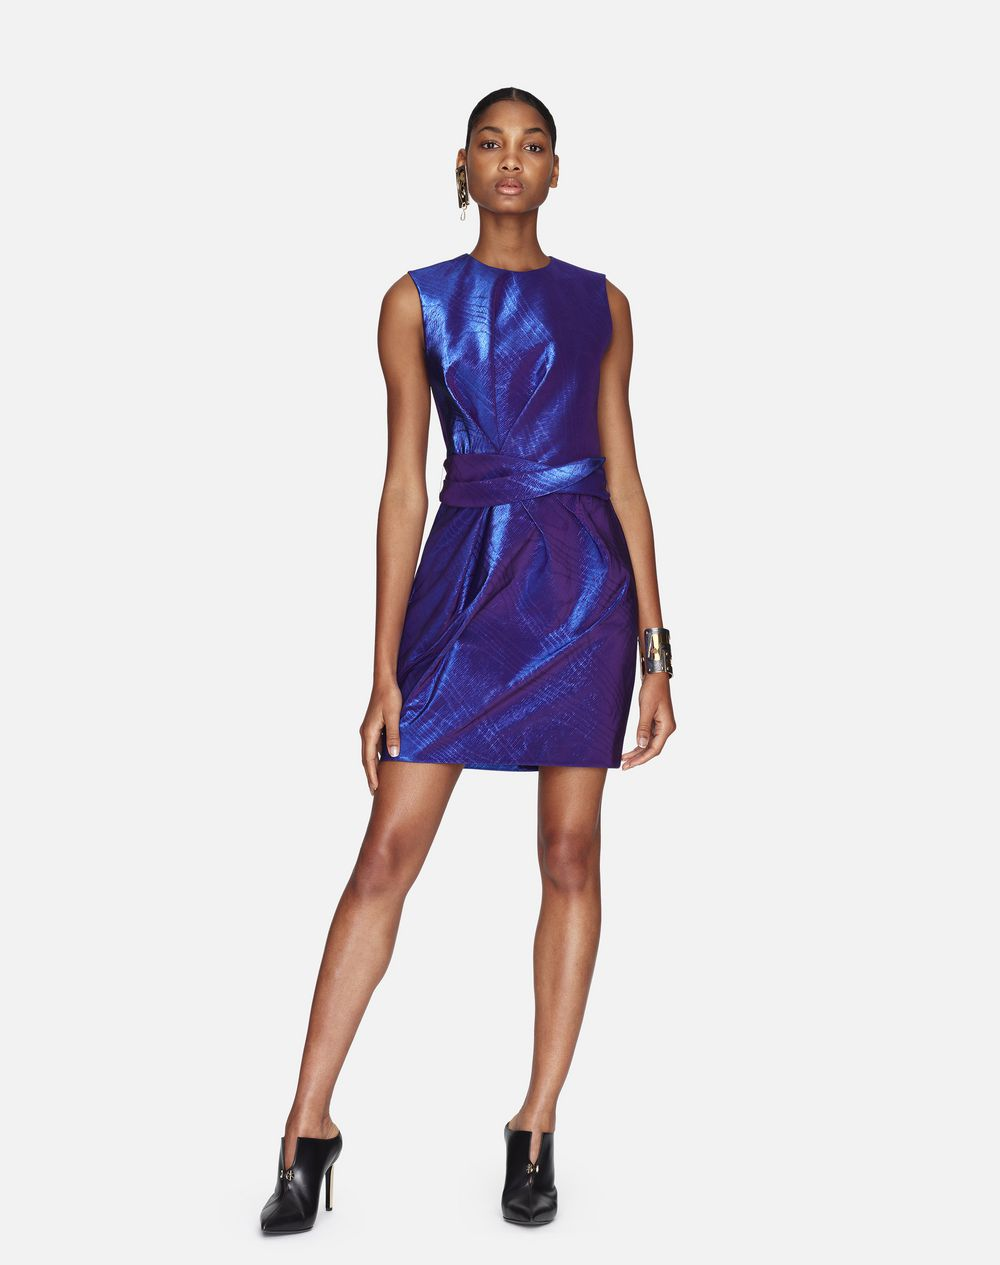 IRIDESCENT AMETHYST FAILLE DRESS - Lanvin